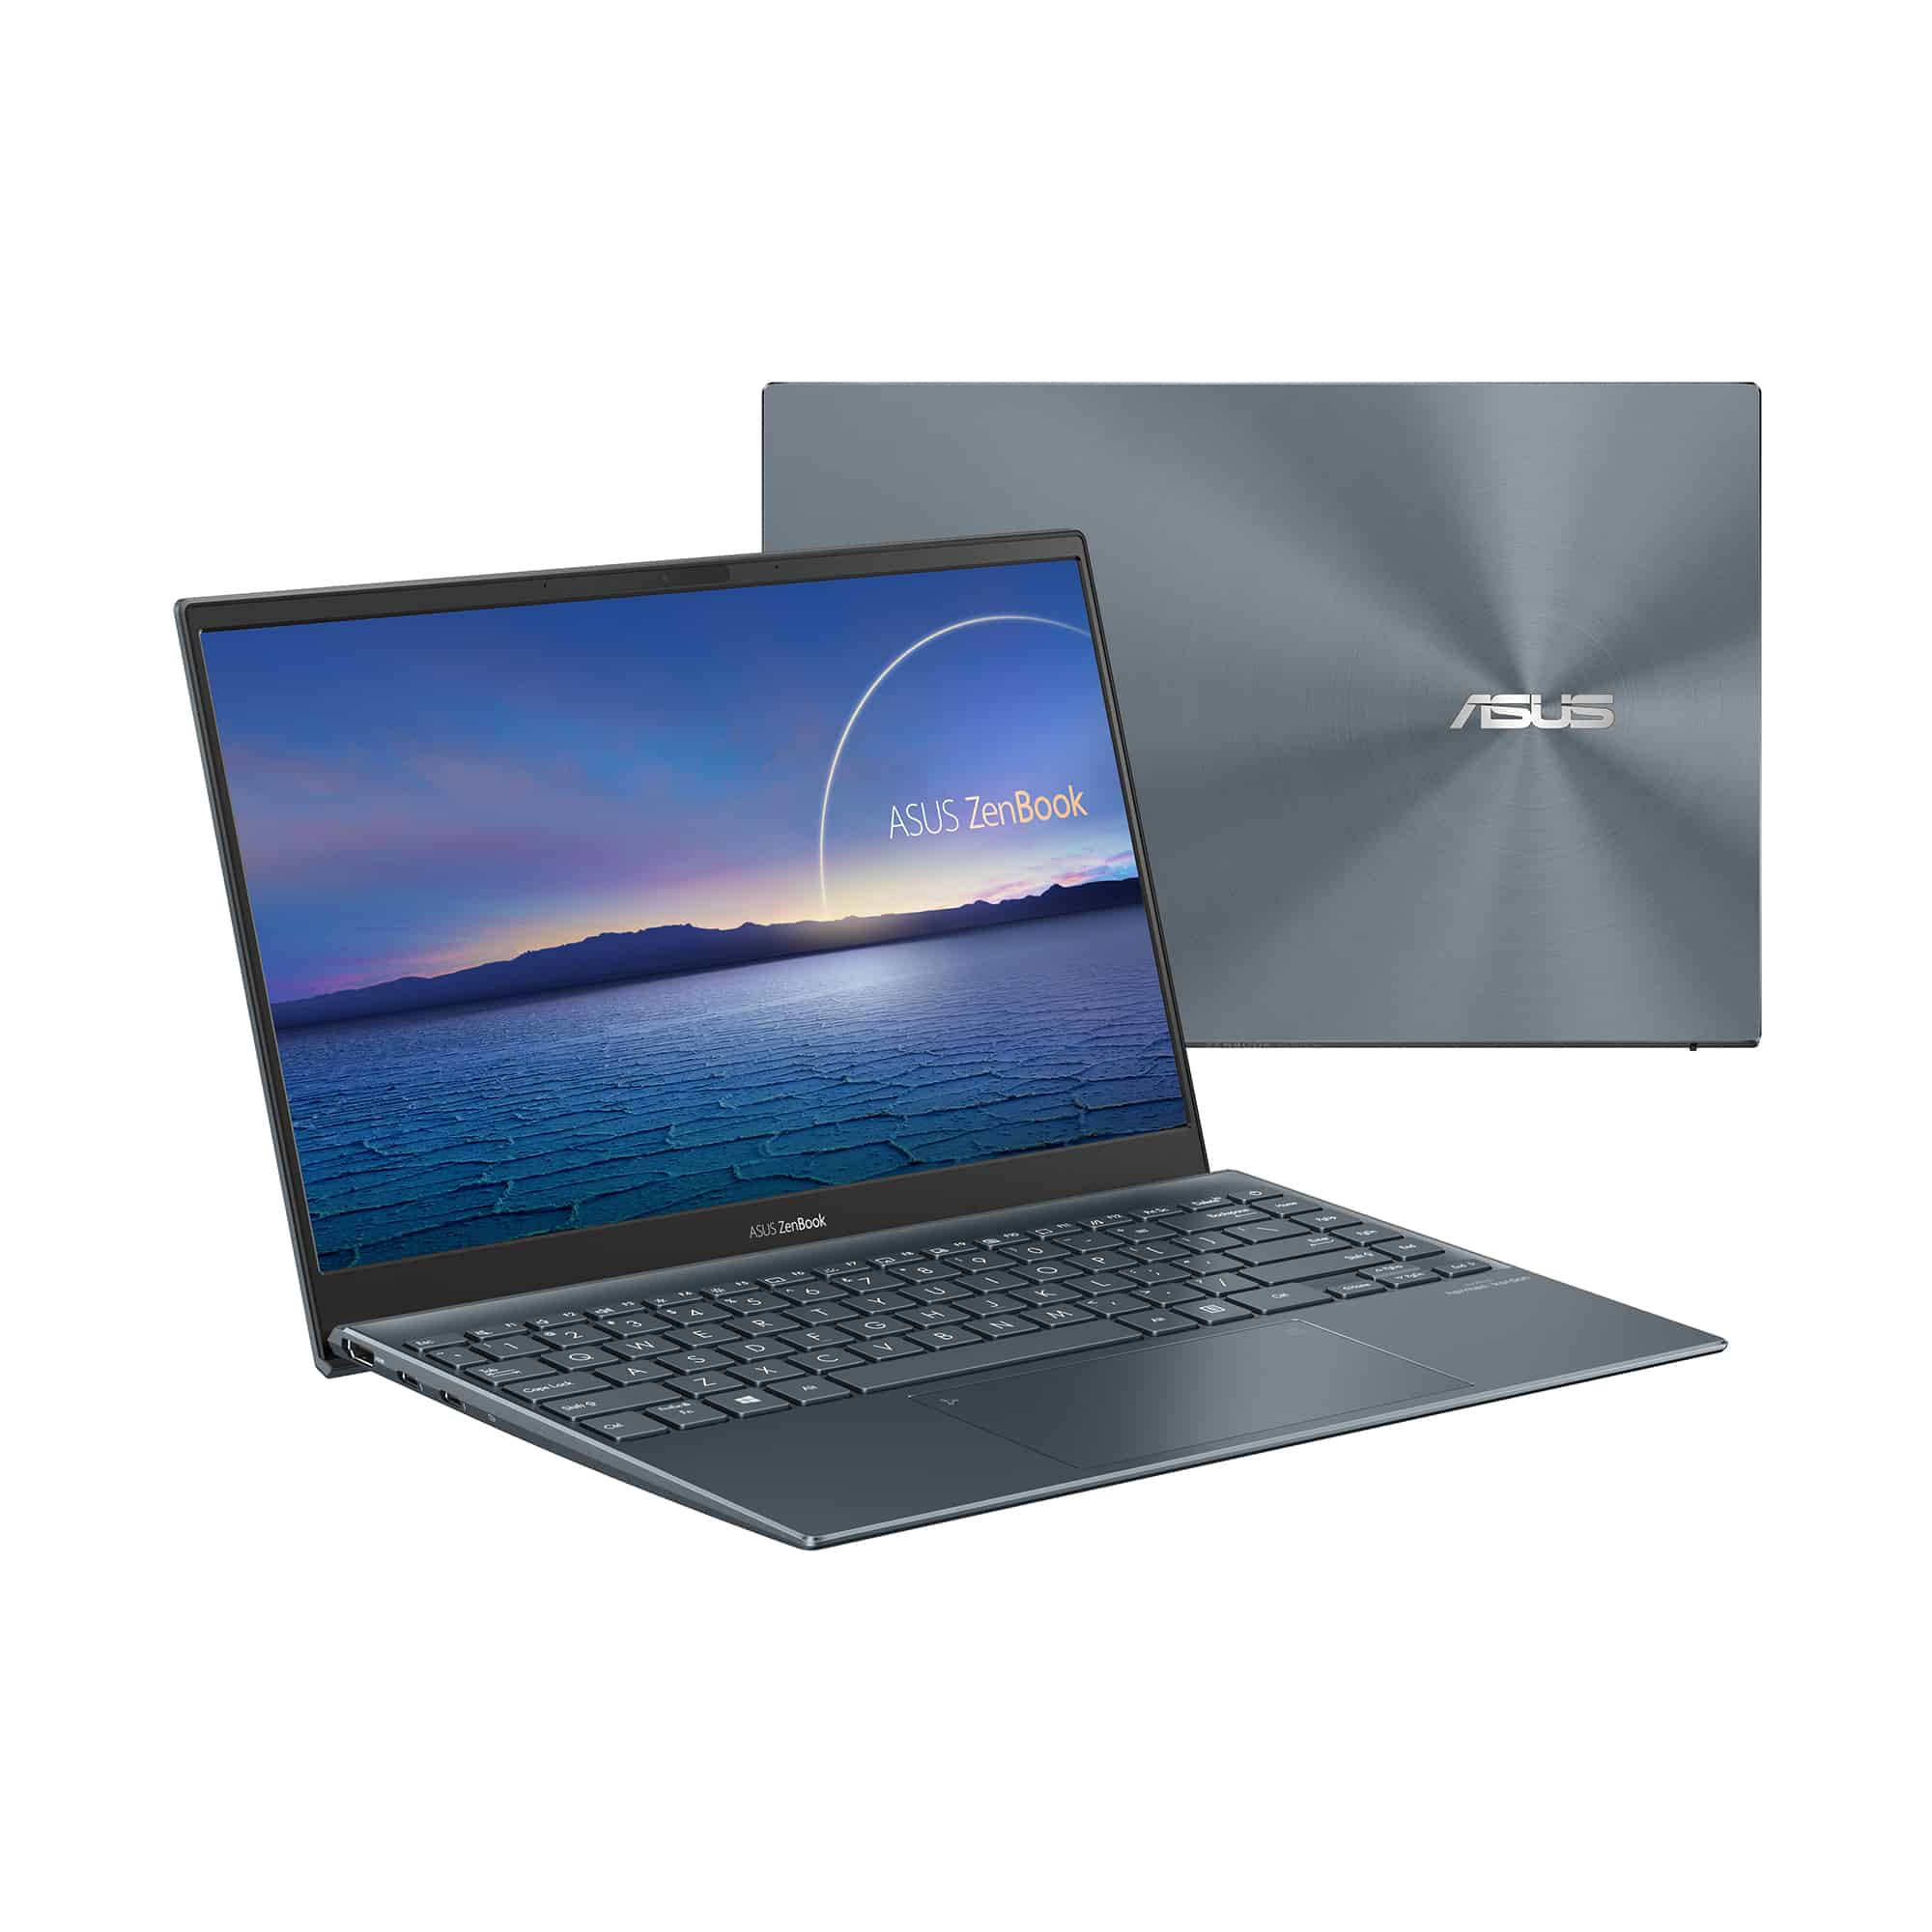 ASUS Announces All-New ZenBook 13 OLED